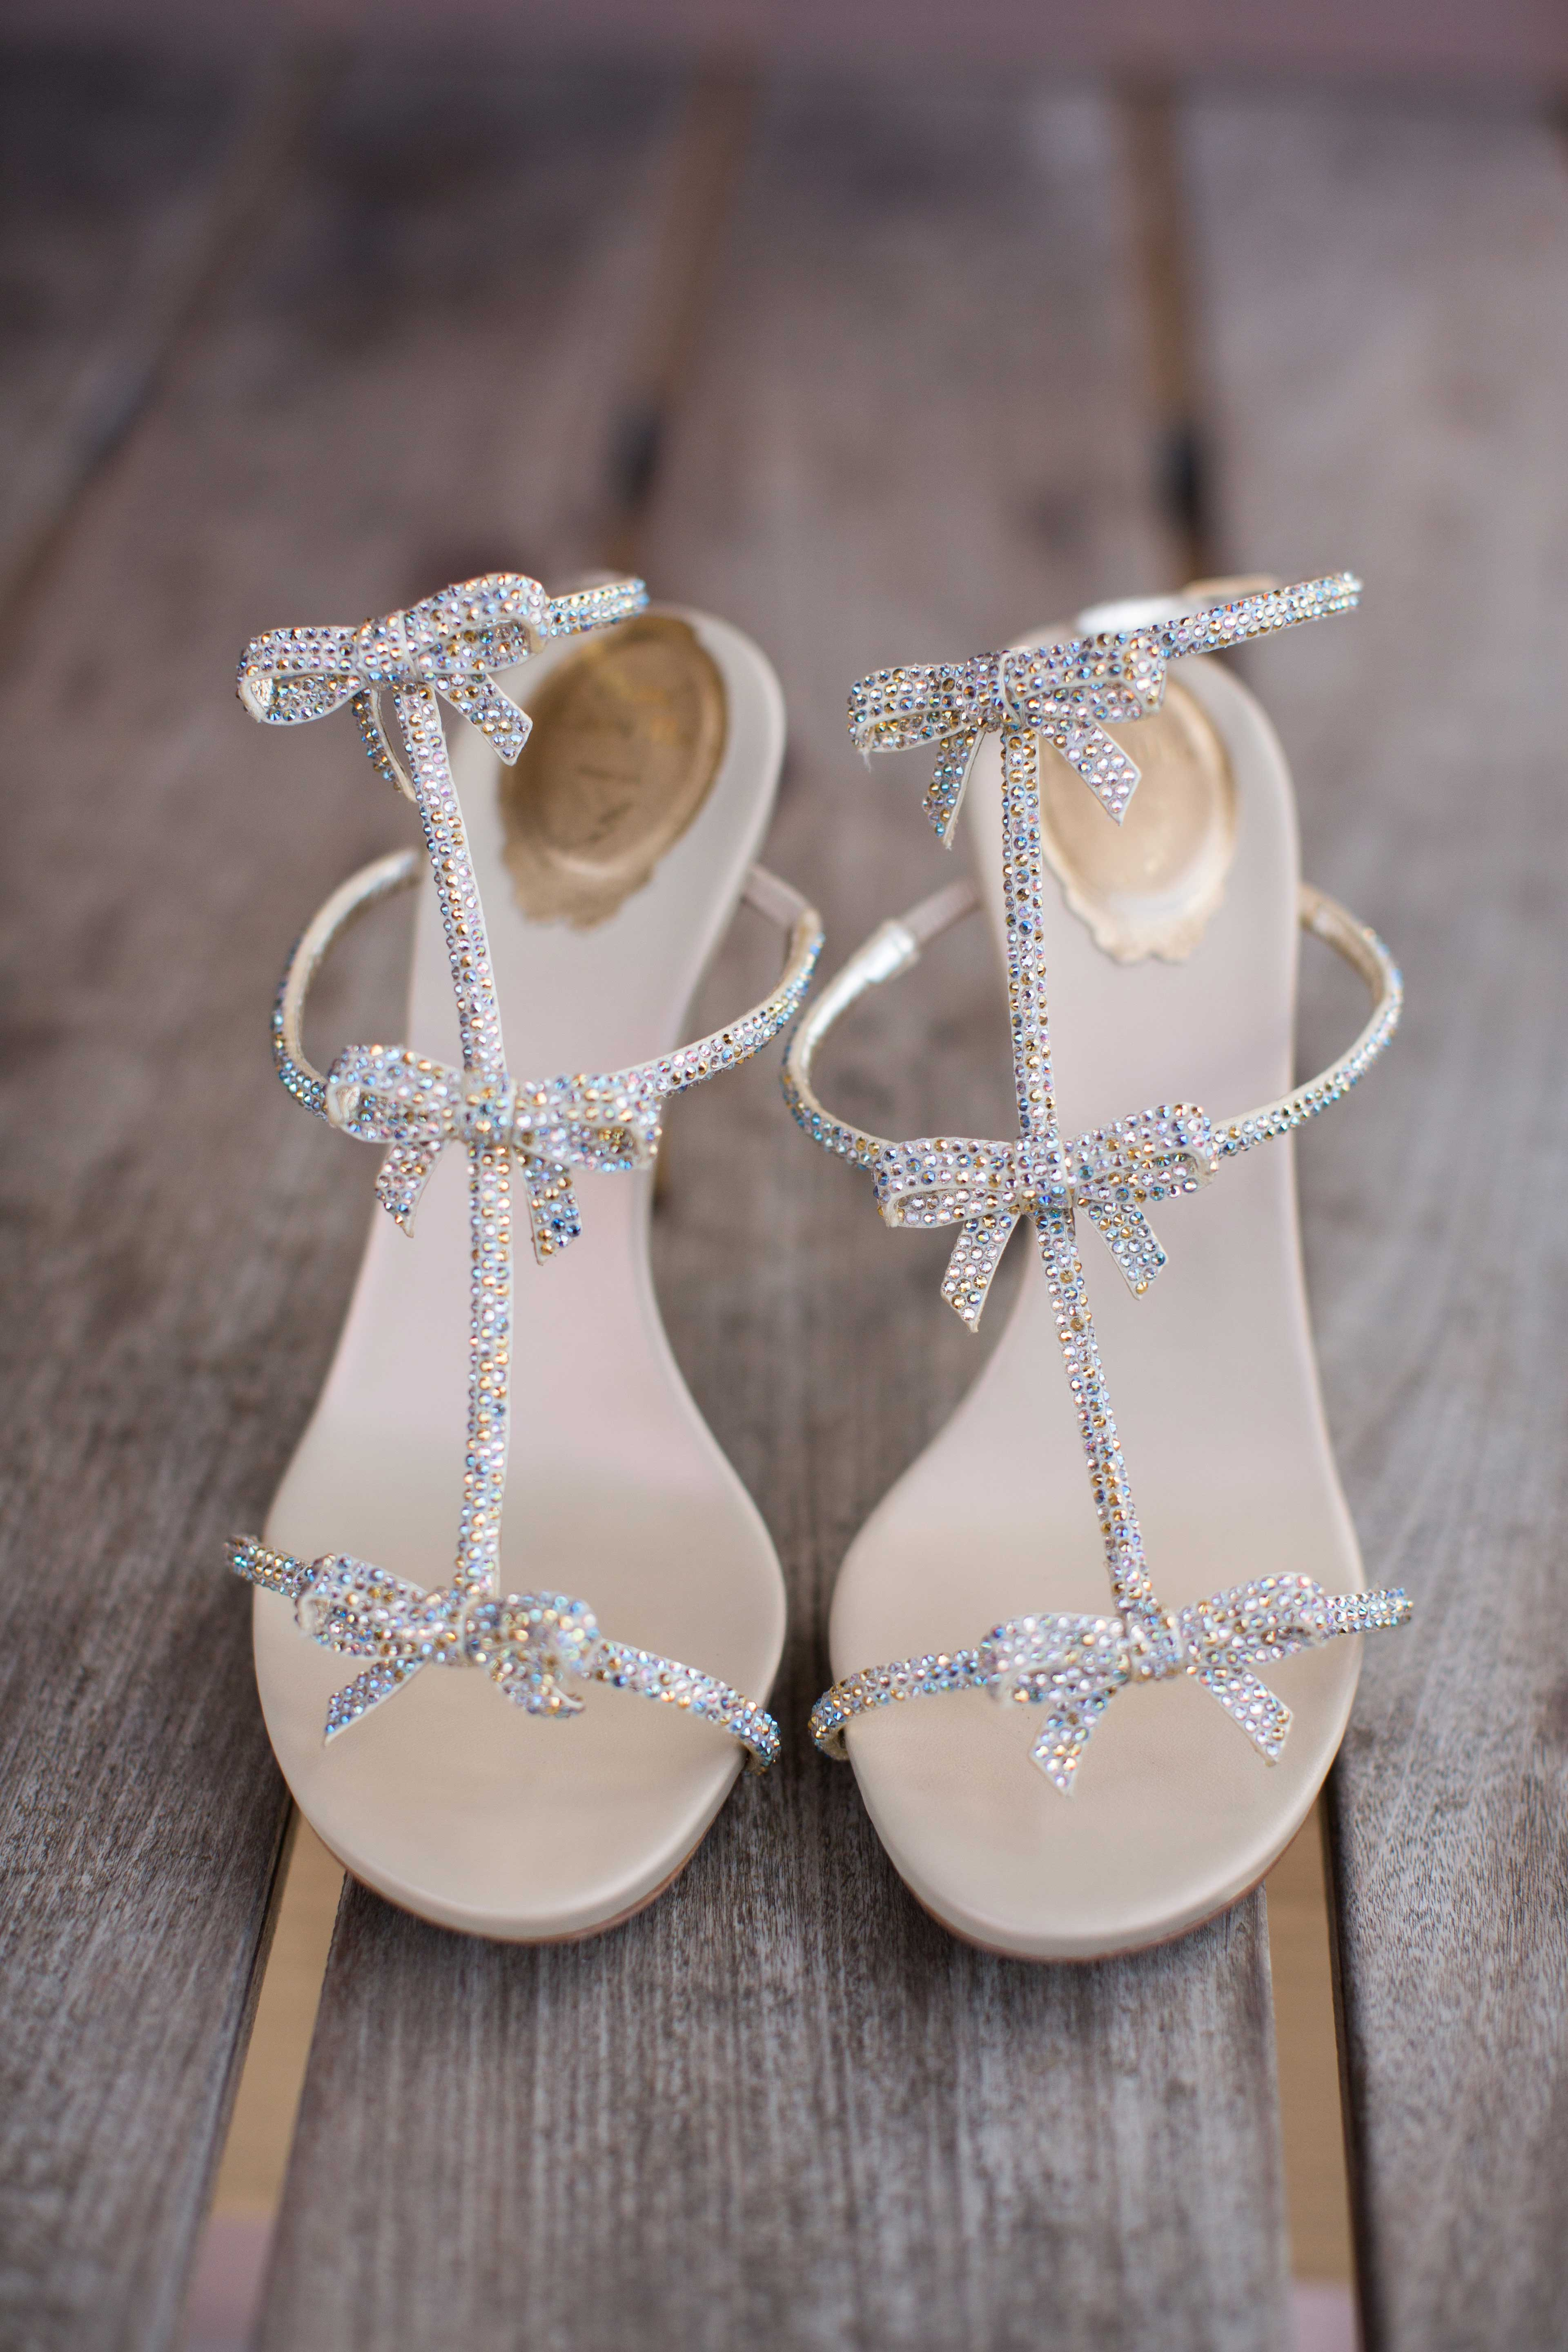 Sparkly Sandal Heels With Bow Detail Wedding Shoes